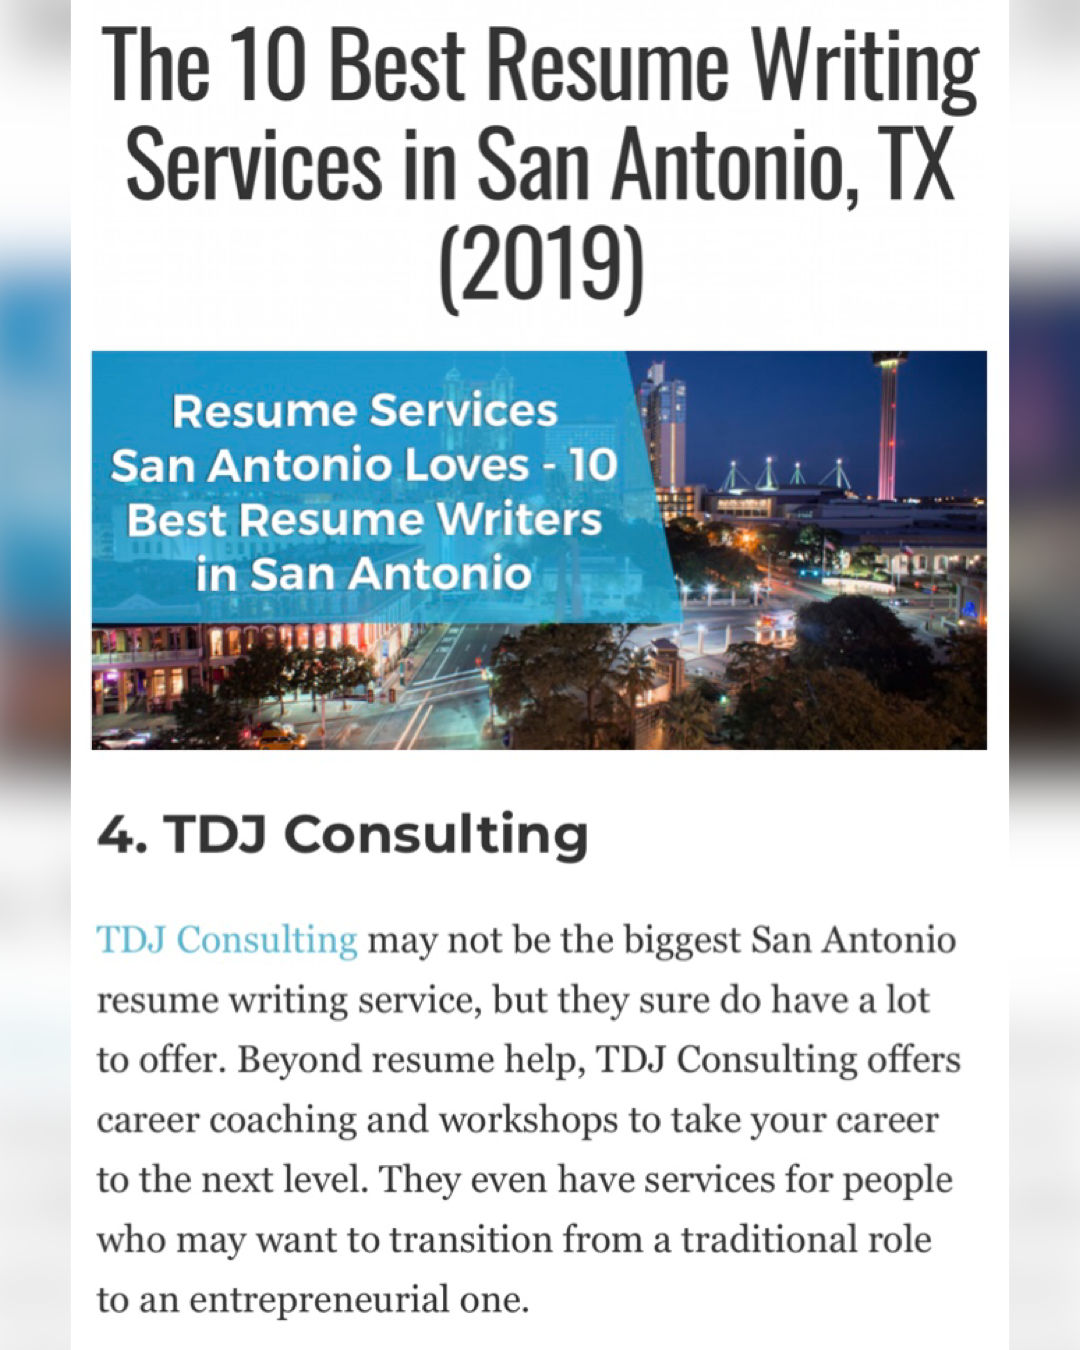 Tdj Consulting Named 4 In Top 10 Resume Writing Services In San